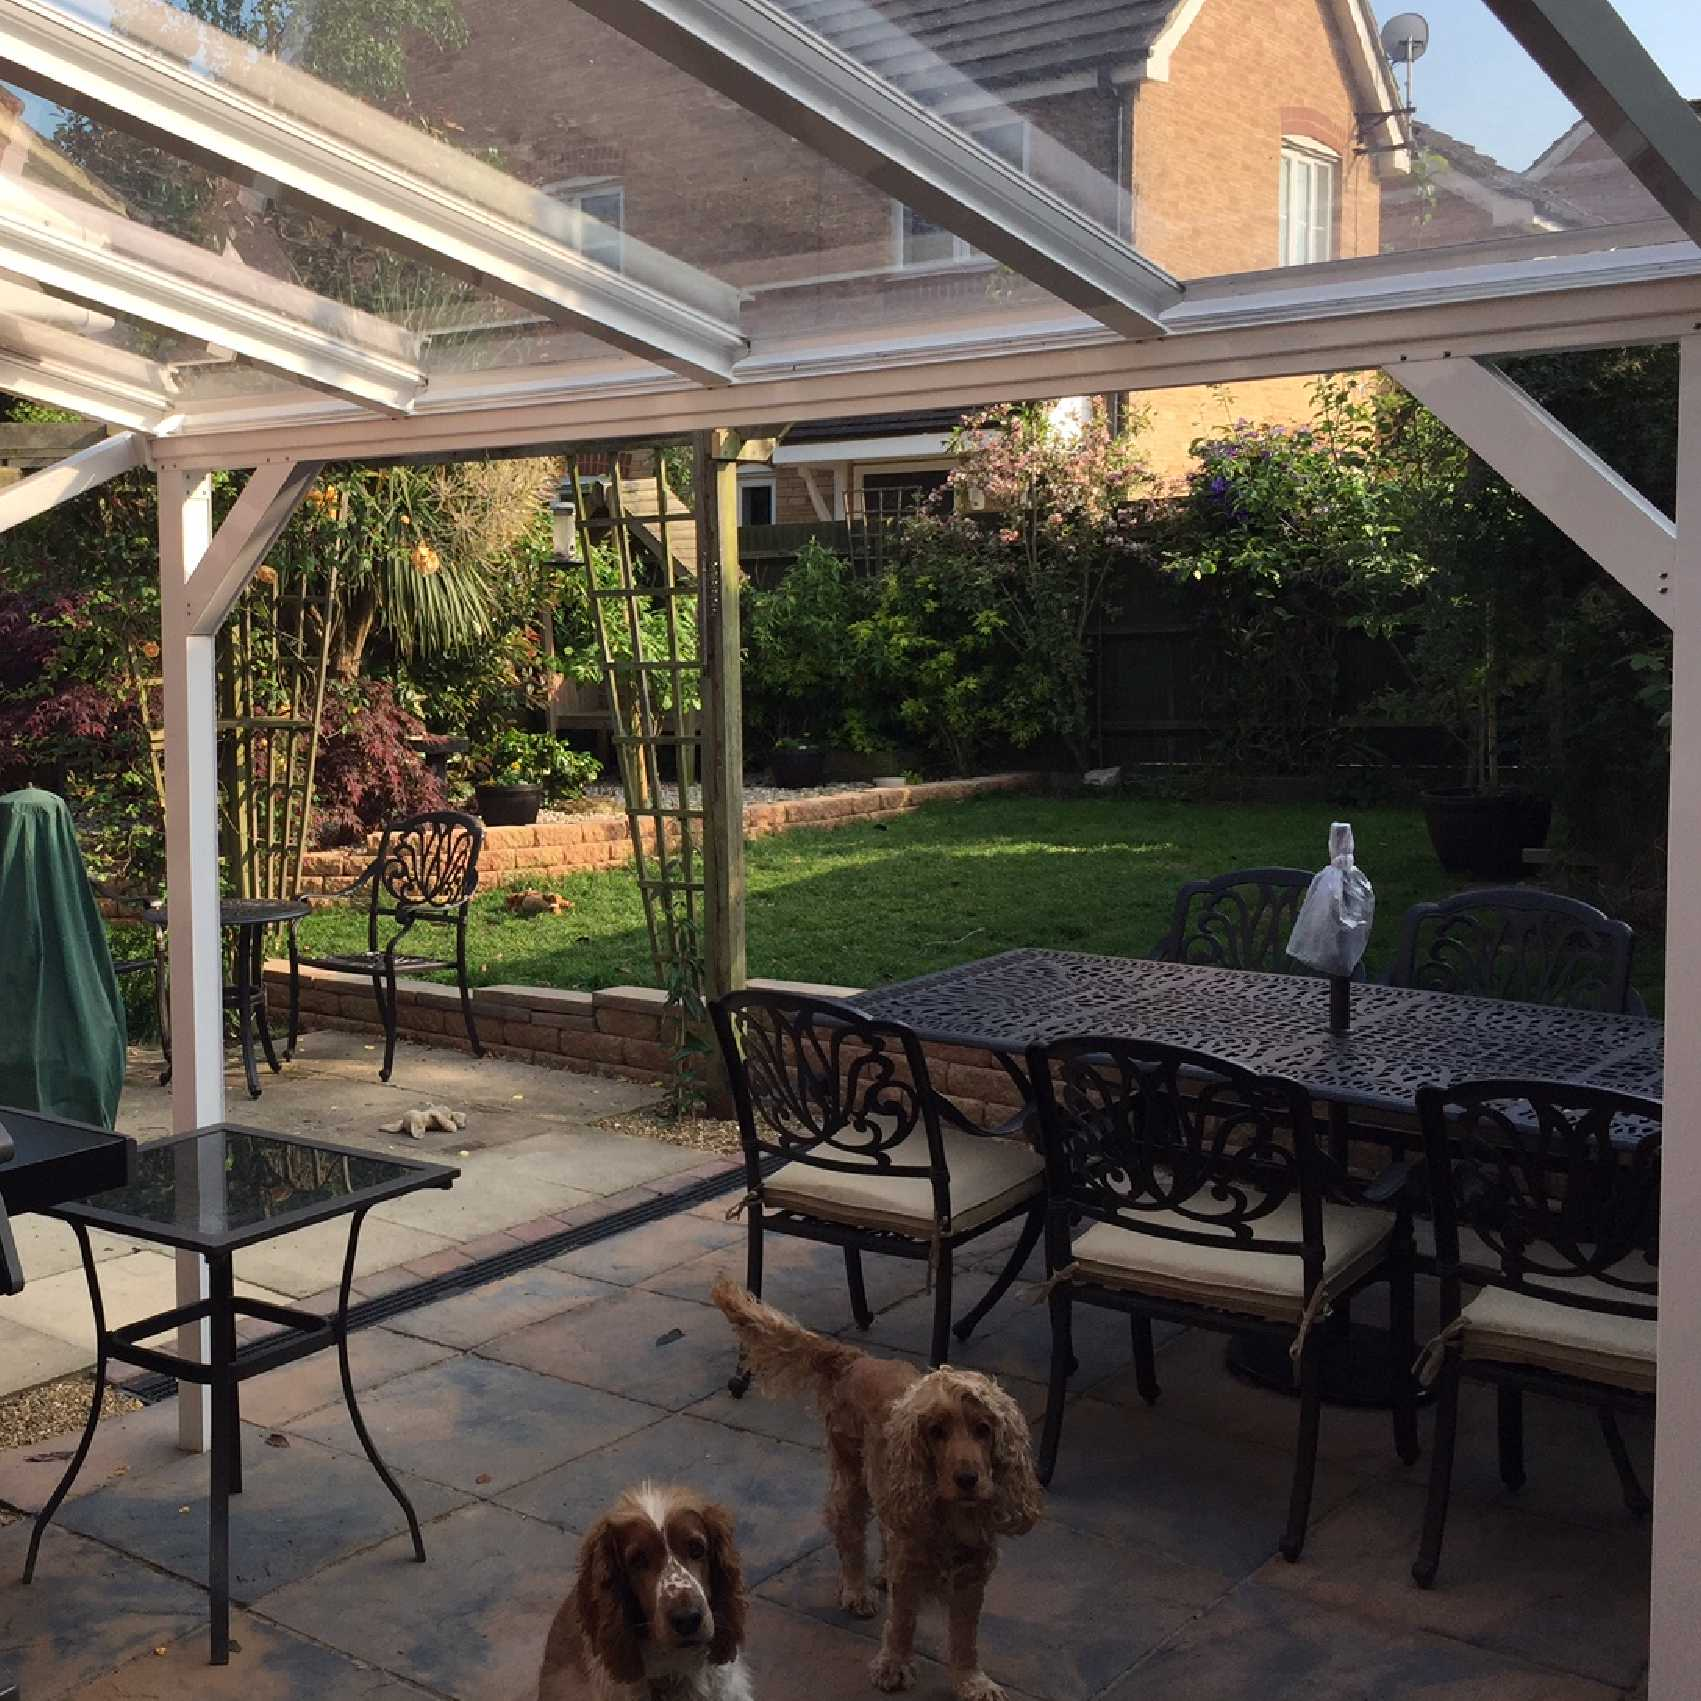 Affordable Omega Smart White Lean-To Canopy with 6mm Glass Clear Plate Polycarbonate Glazing - 10.5m (W) x 1.5m (P), (5) Supporting Posts